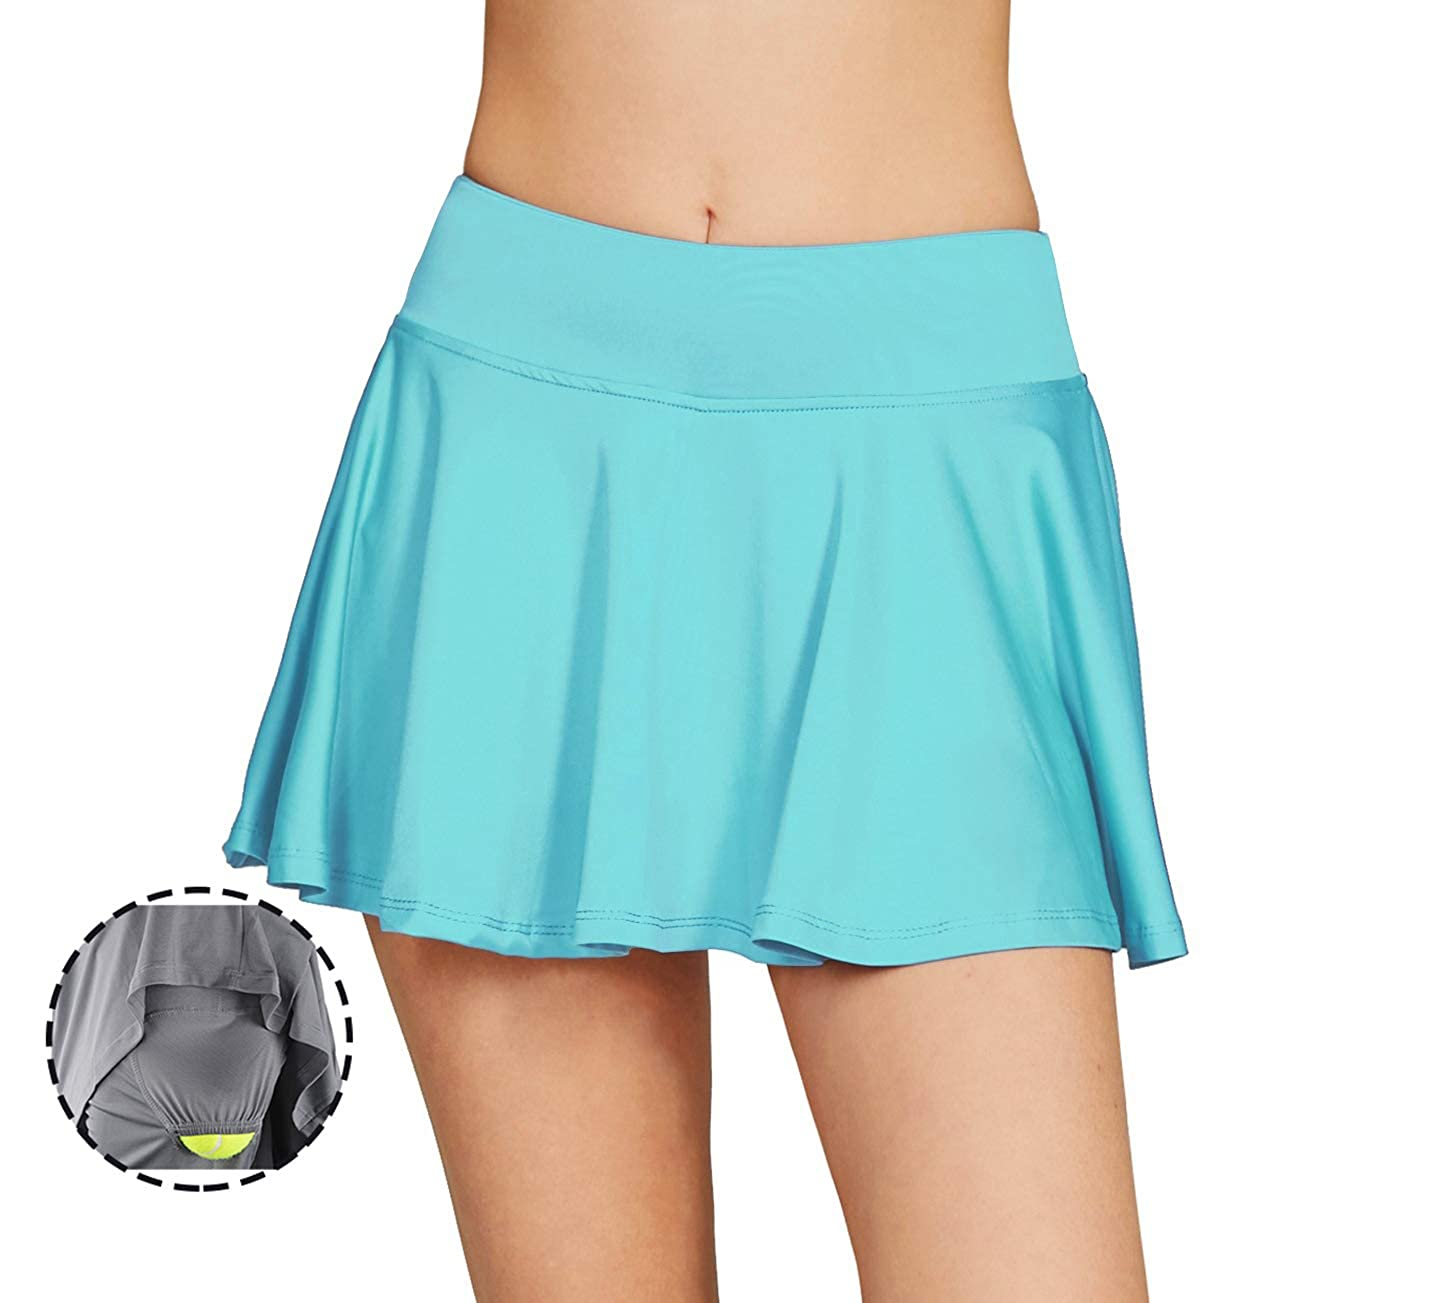 Cityoung Women's Basic Stretchy Pleated Athletic Skirt Tennis Quick Dry Active Skorts with Shorts Inner 0409hf02n-US2